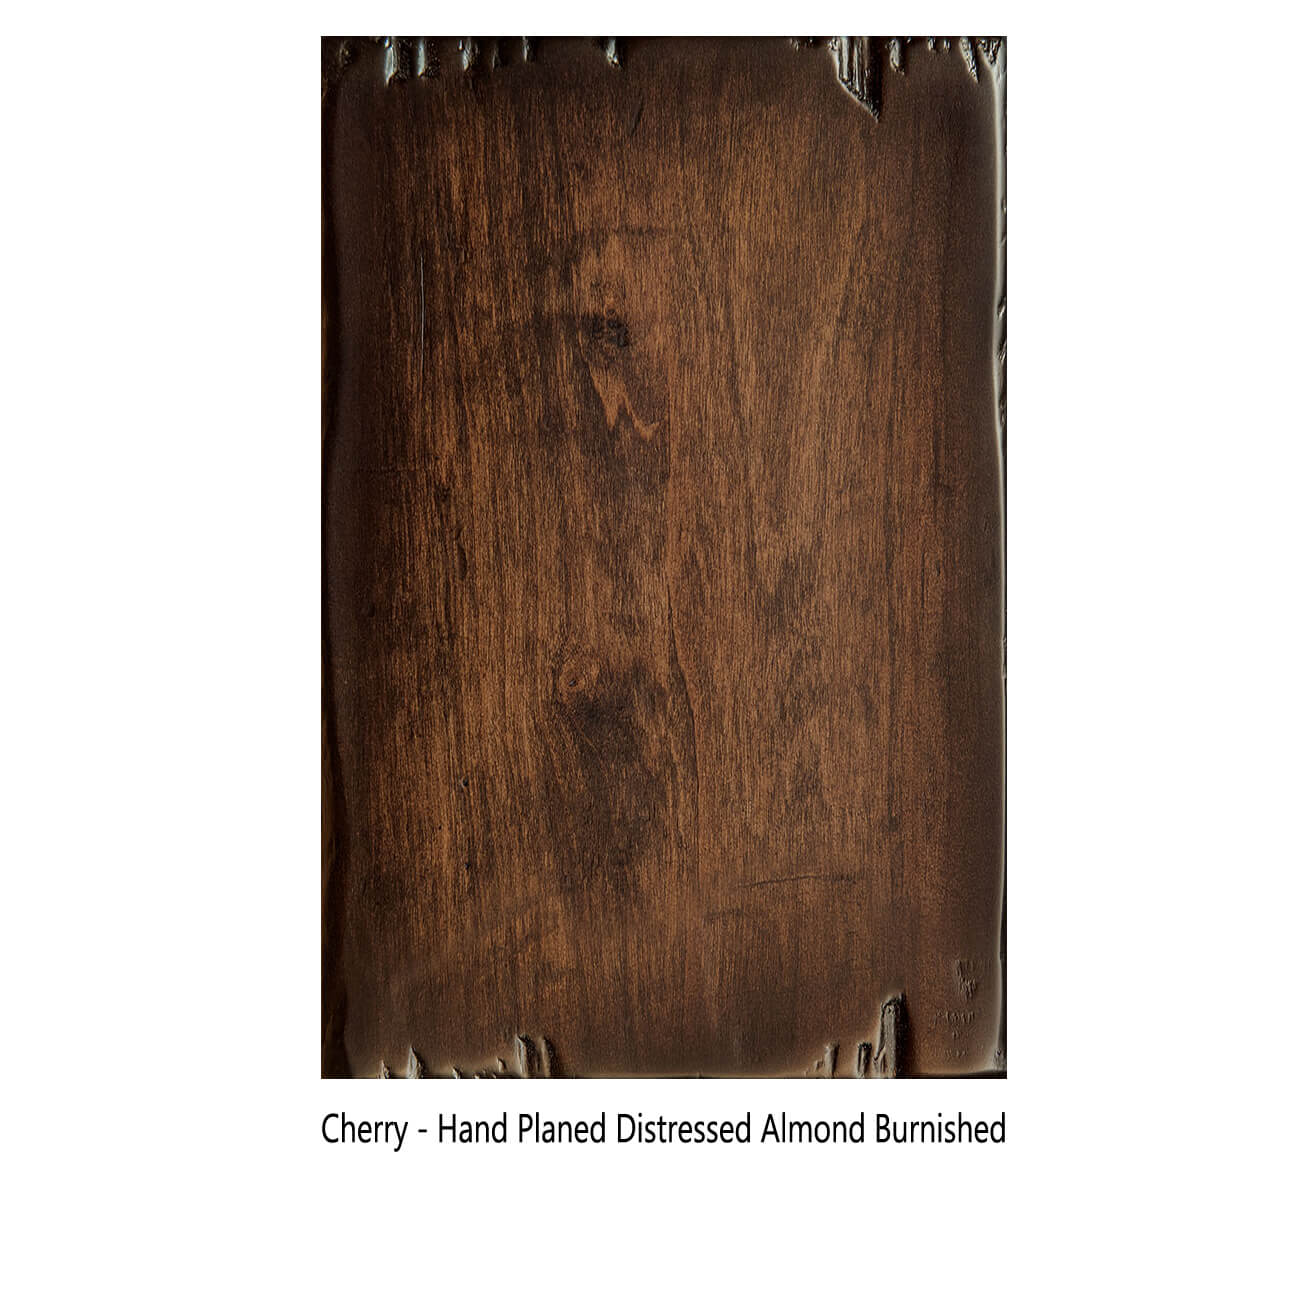 cherry-hand-planed-distressed-almond-burnished-category-4-10-sheen-copy.jpg